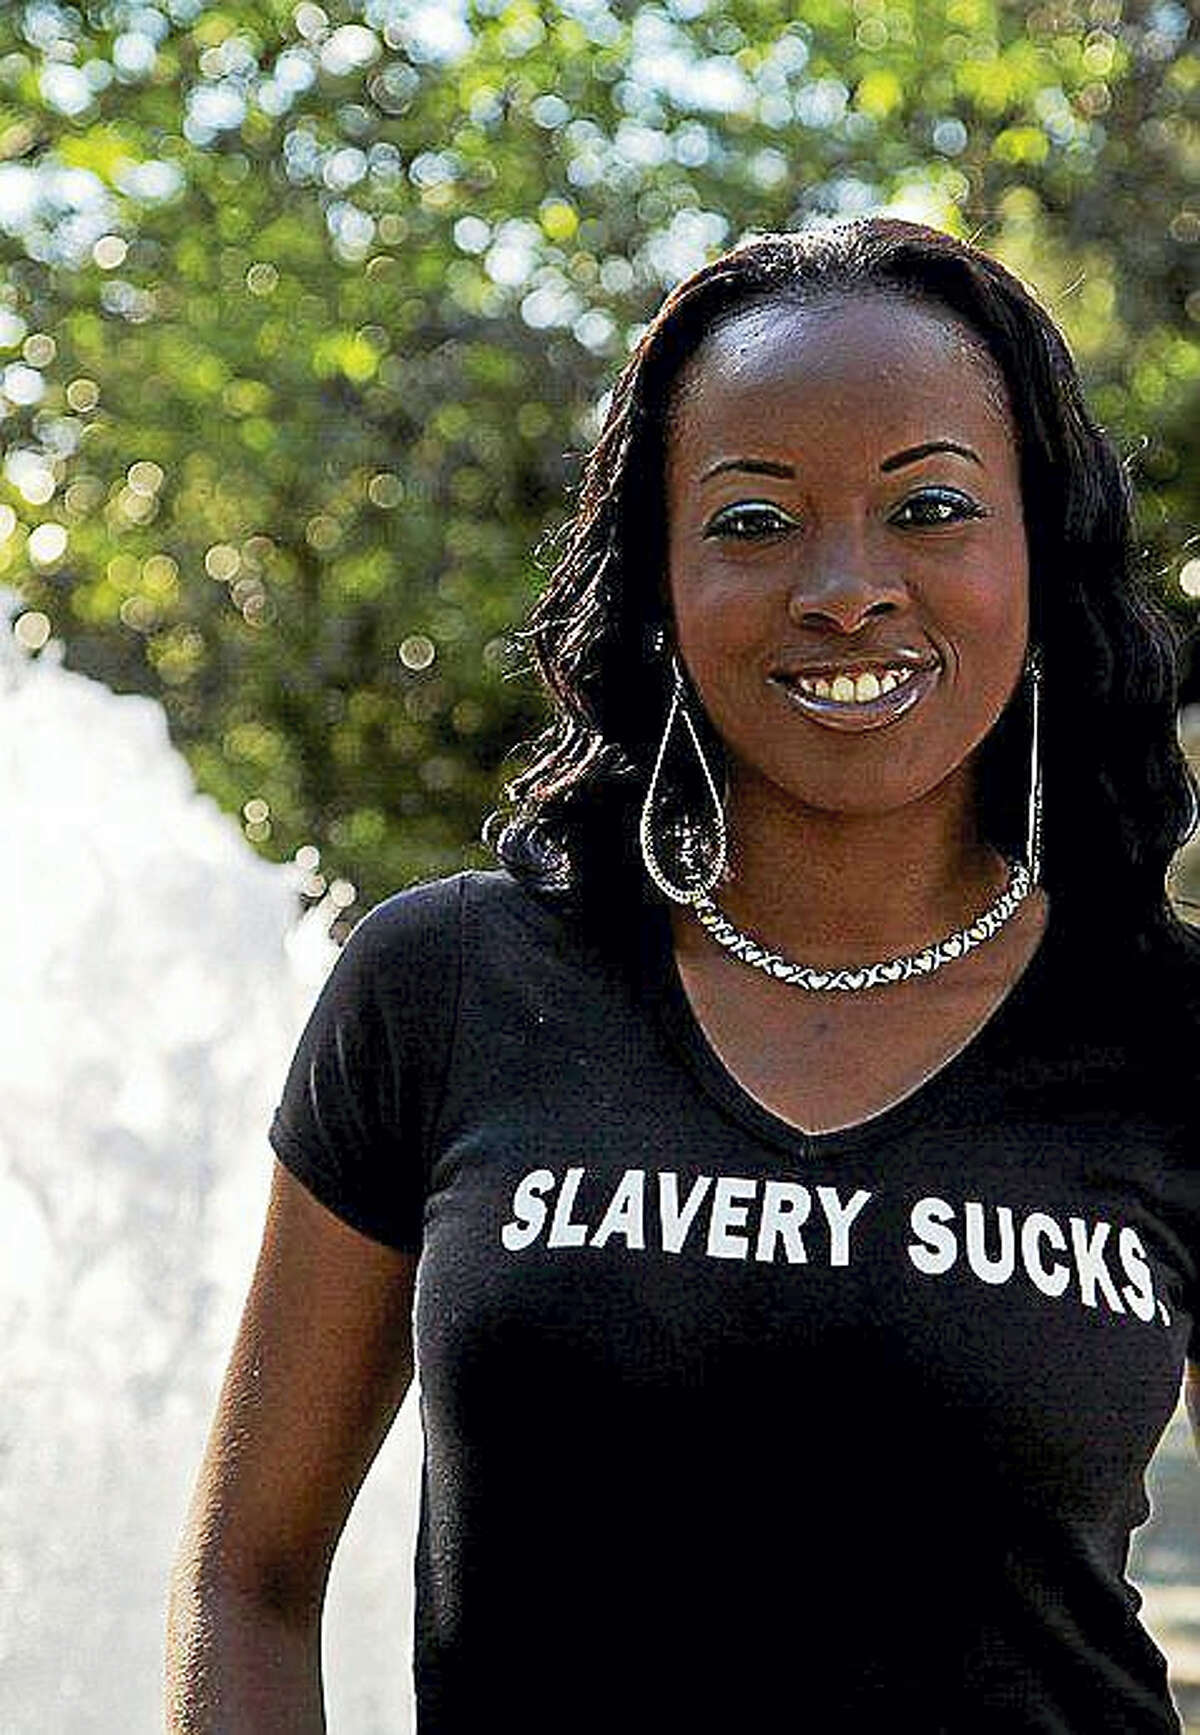 Shamere McKenzie, 32, was charged with conspiracy to commit sex trafficking of minors in January 2007. While she accepted responsibility for her actions, McKenzie also touts the story of a survivor, or a woman who was victimized by a pimp and forced to do his bidding. She is now an advocate for survivors of human trafficking.